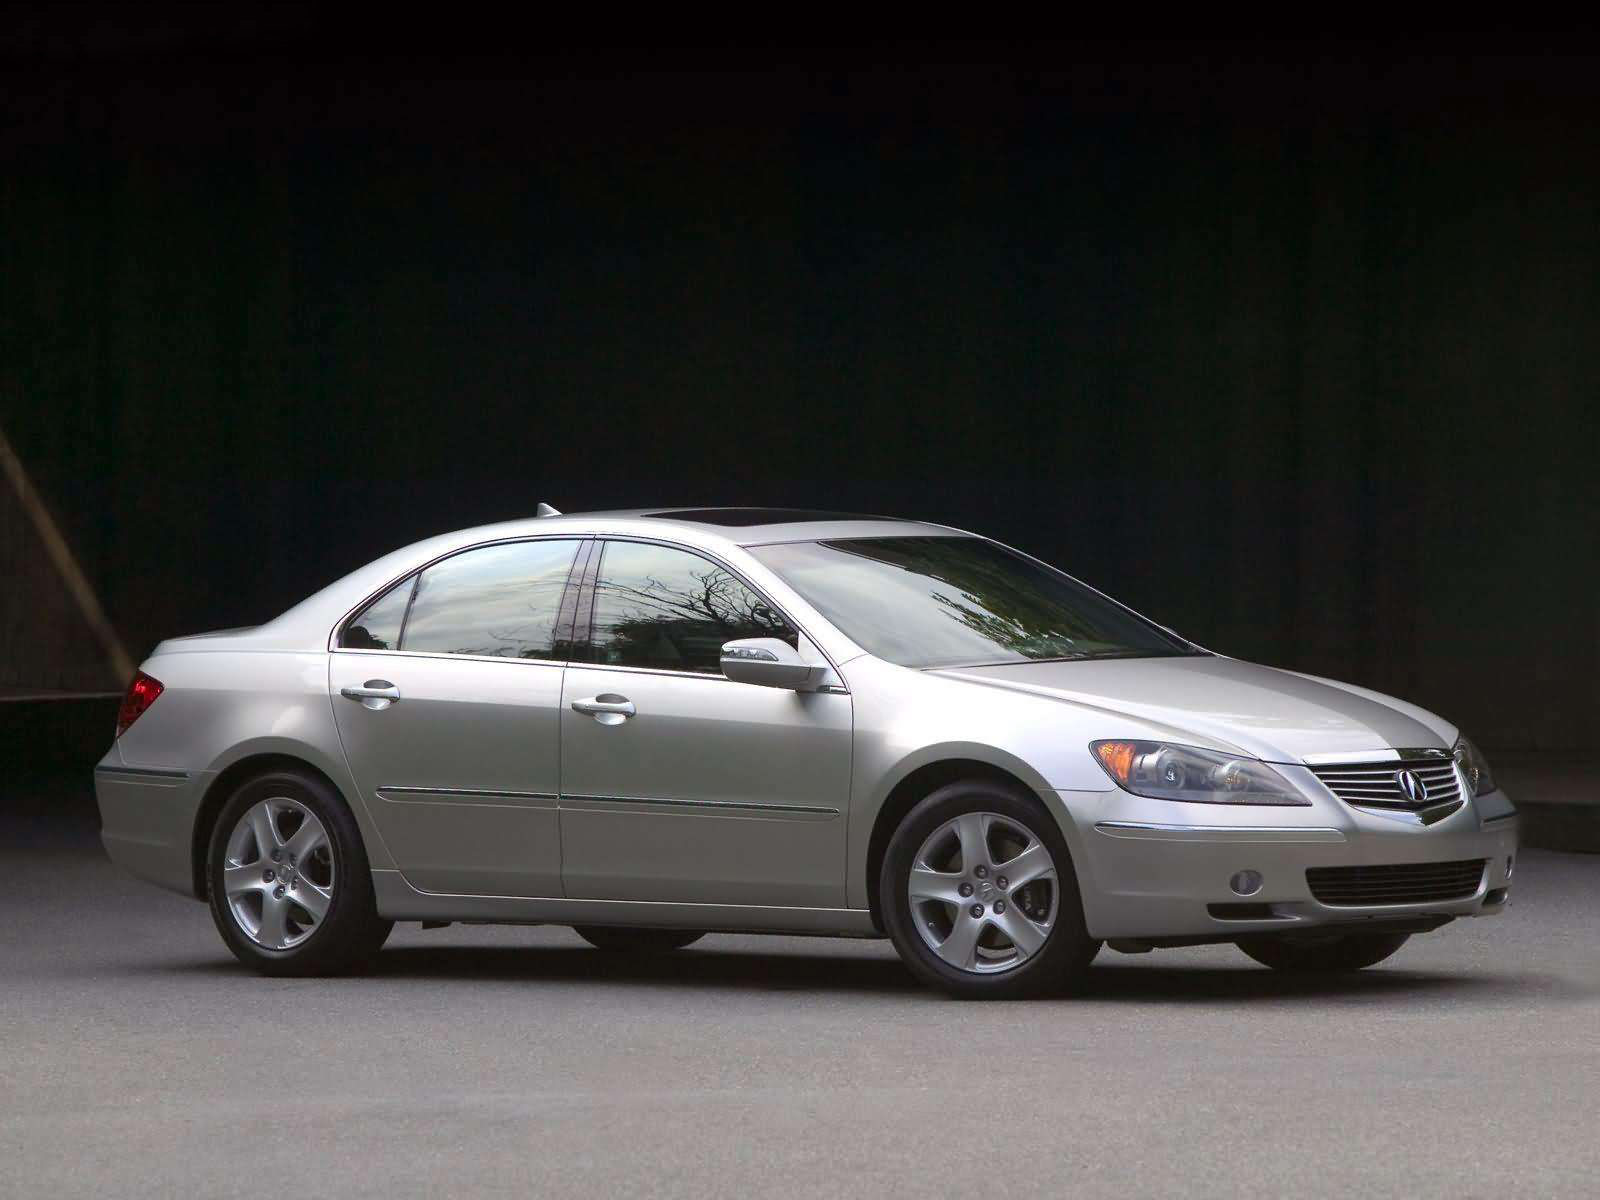 2005 acura rl japanese car pictures